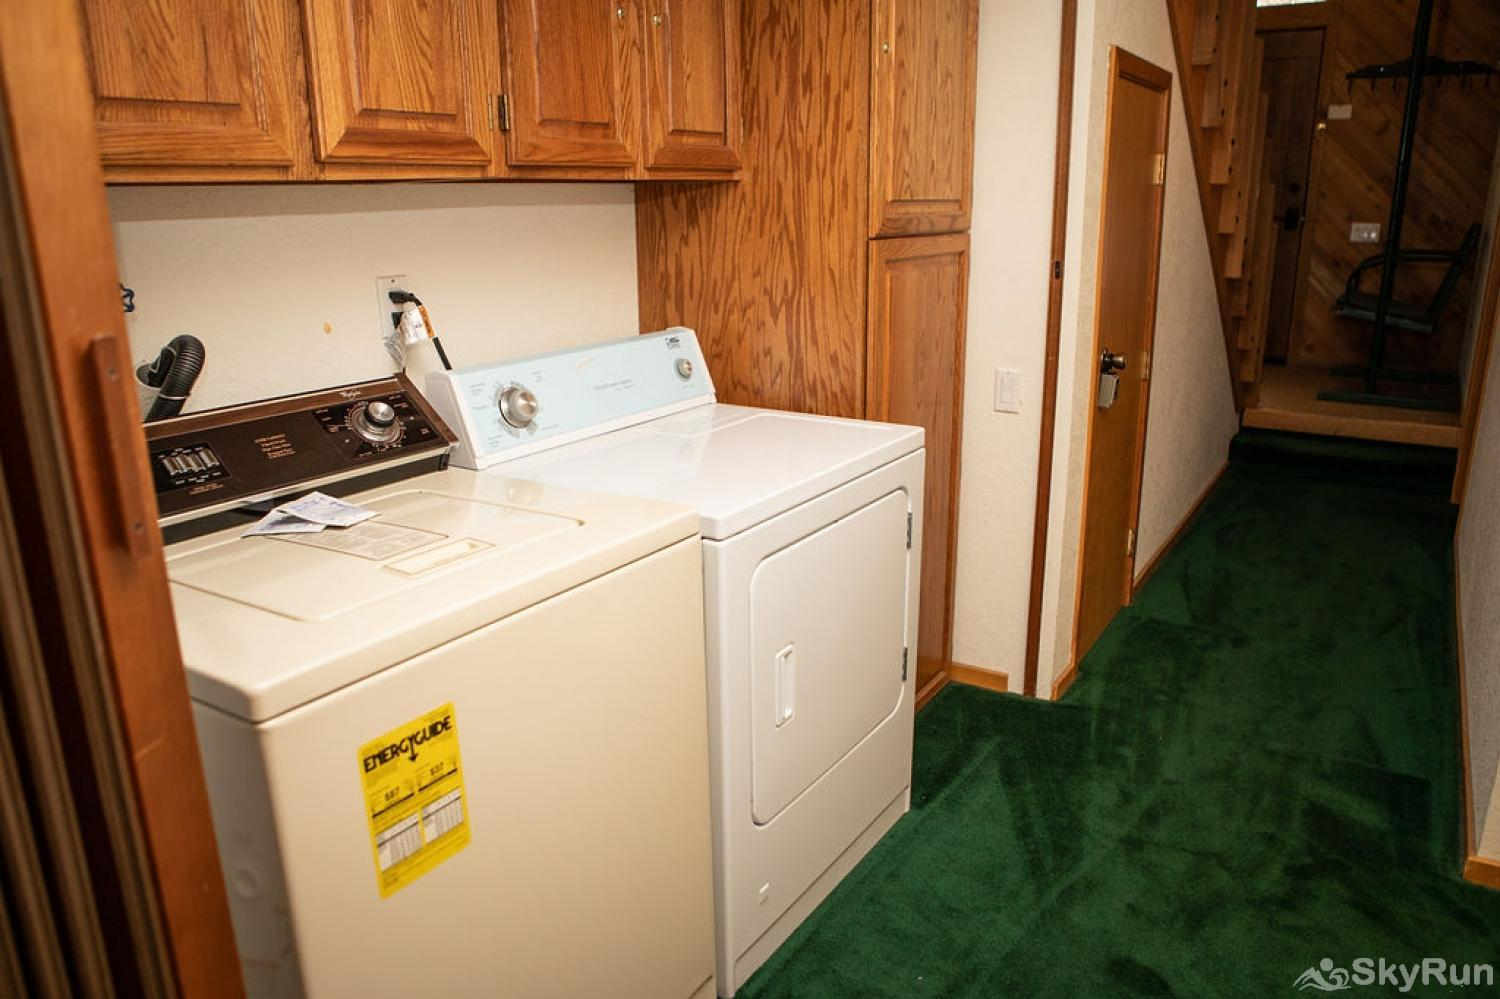 187 Ridgepoint Washer/dryer